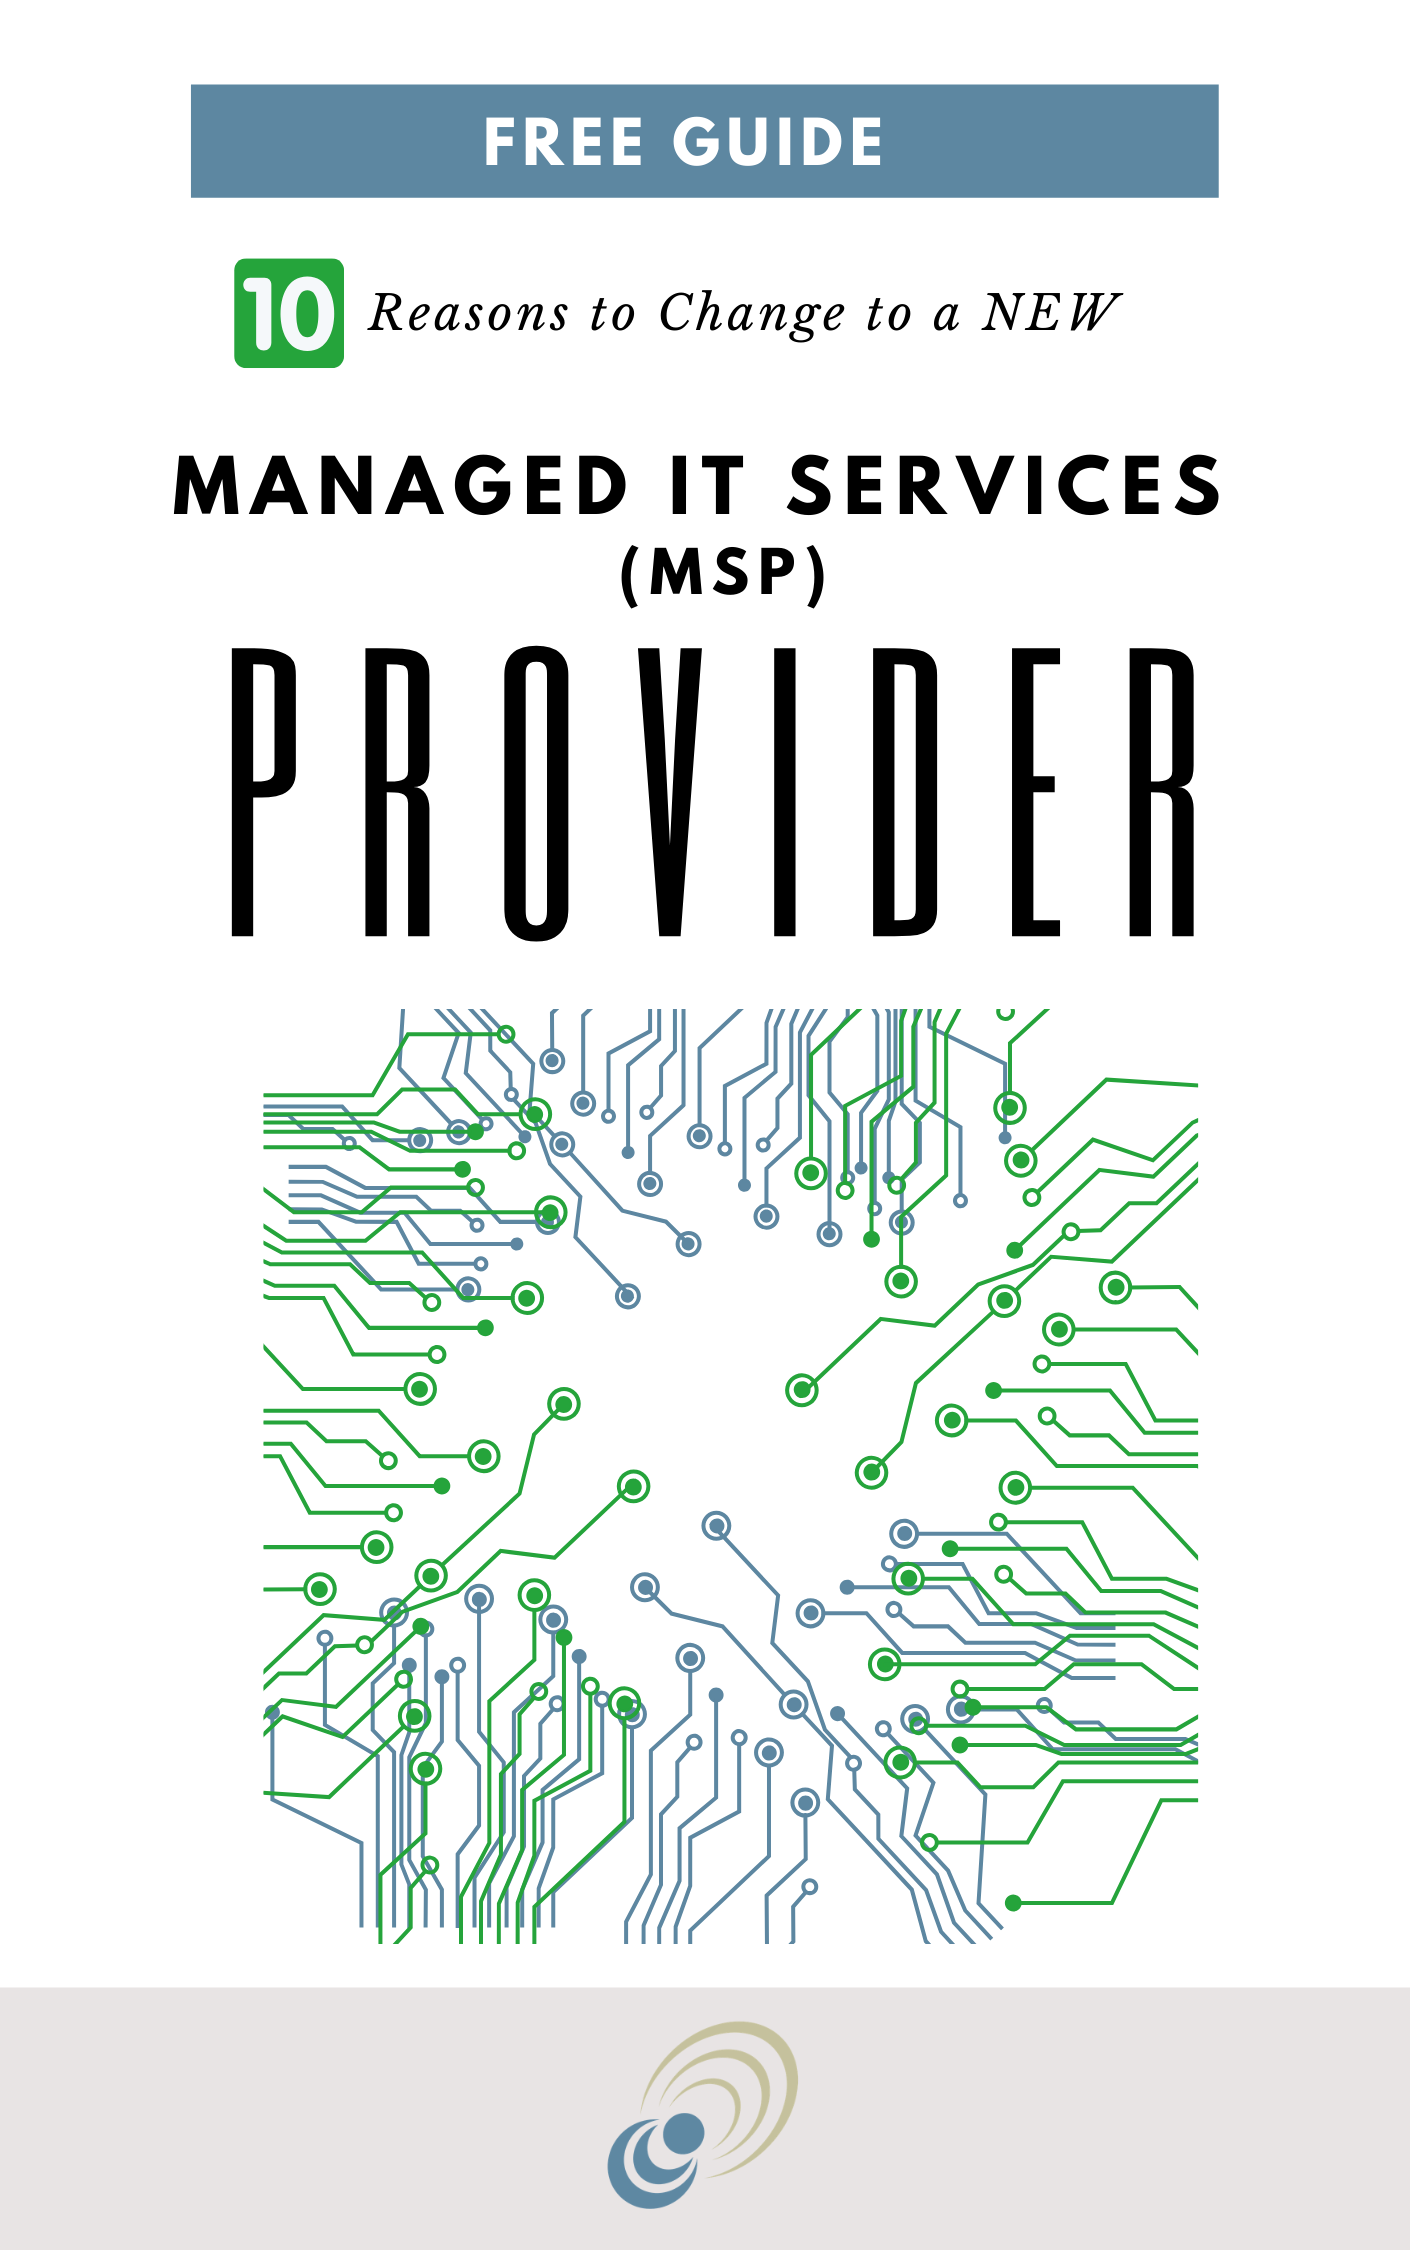 ten reasons to change to a new managed IT services provider guide